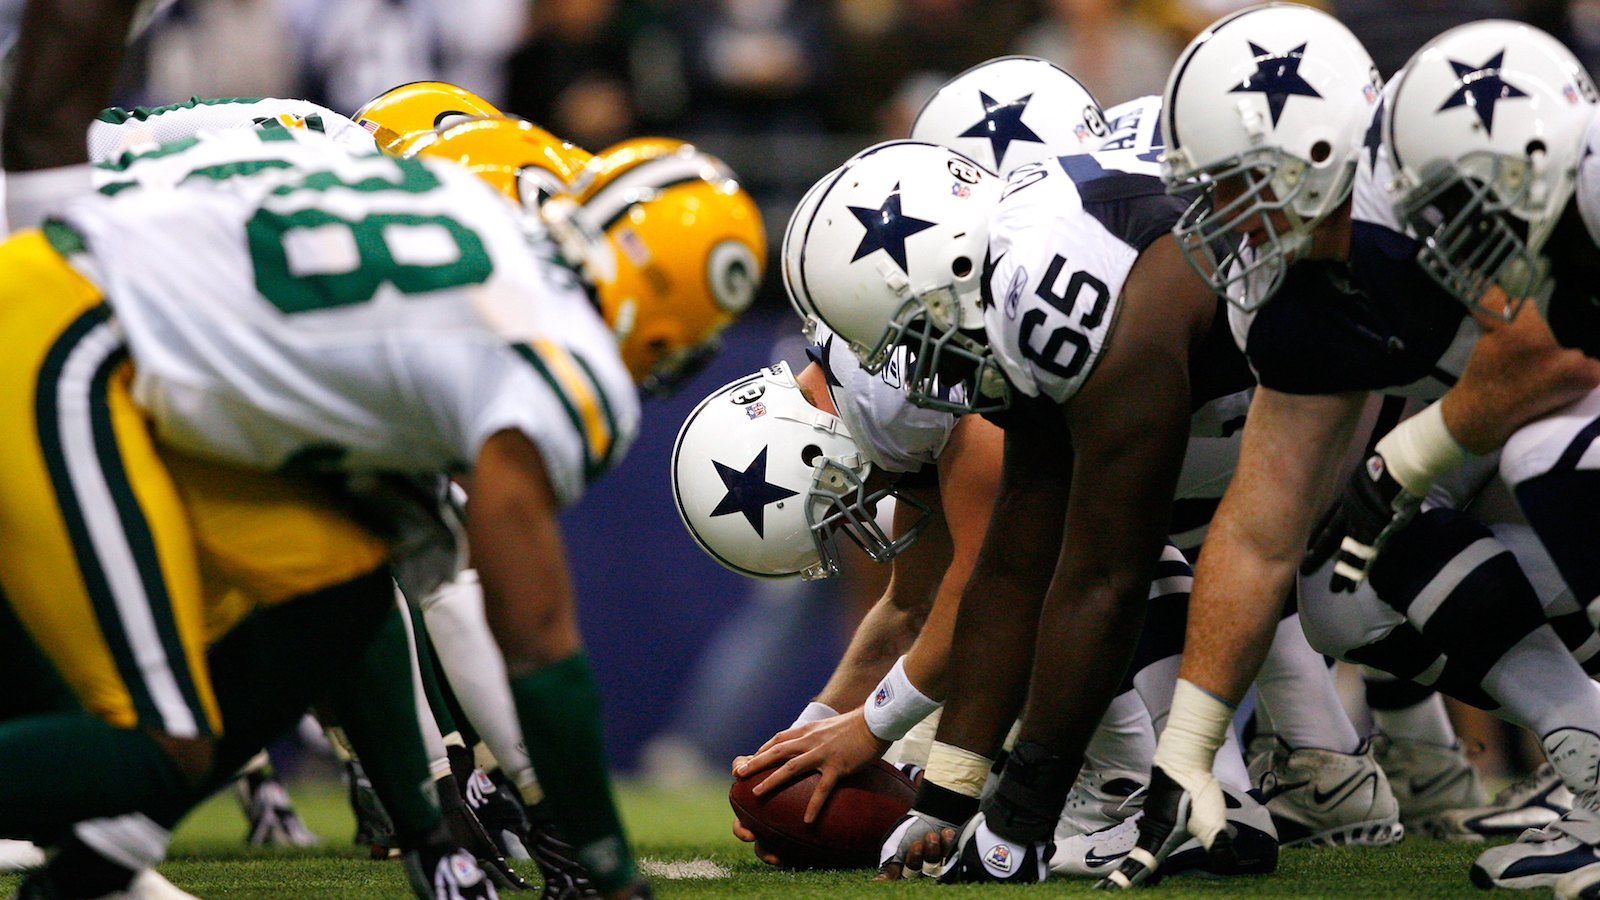 IRVING, TX - NOVEMBER 29:  The Dallas Cowboys face off at the line of scrimmage against the Green Bay Packers on November 29, 2007 at Texas Stadium in Irving, Texas. The Cowboys defeated the Packers 37-27. (Photo by Joe Robbins/Getty Images)